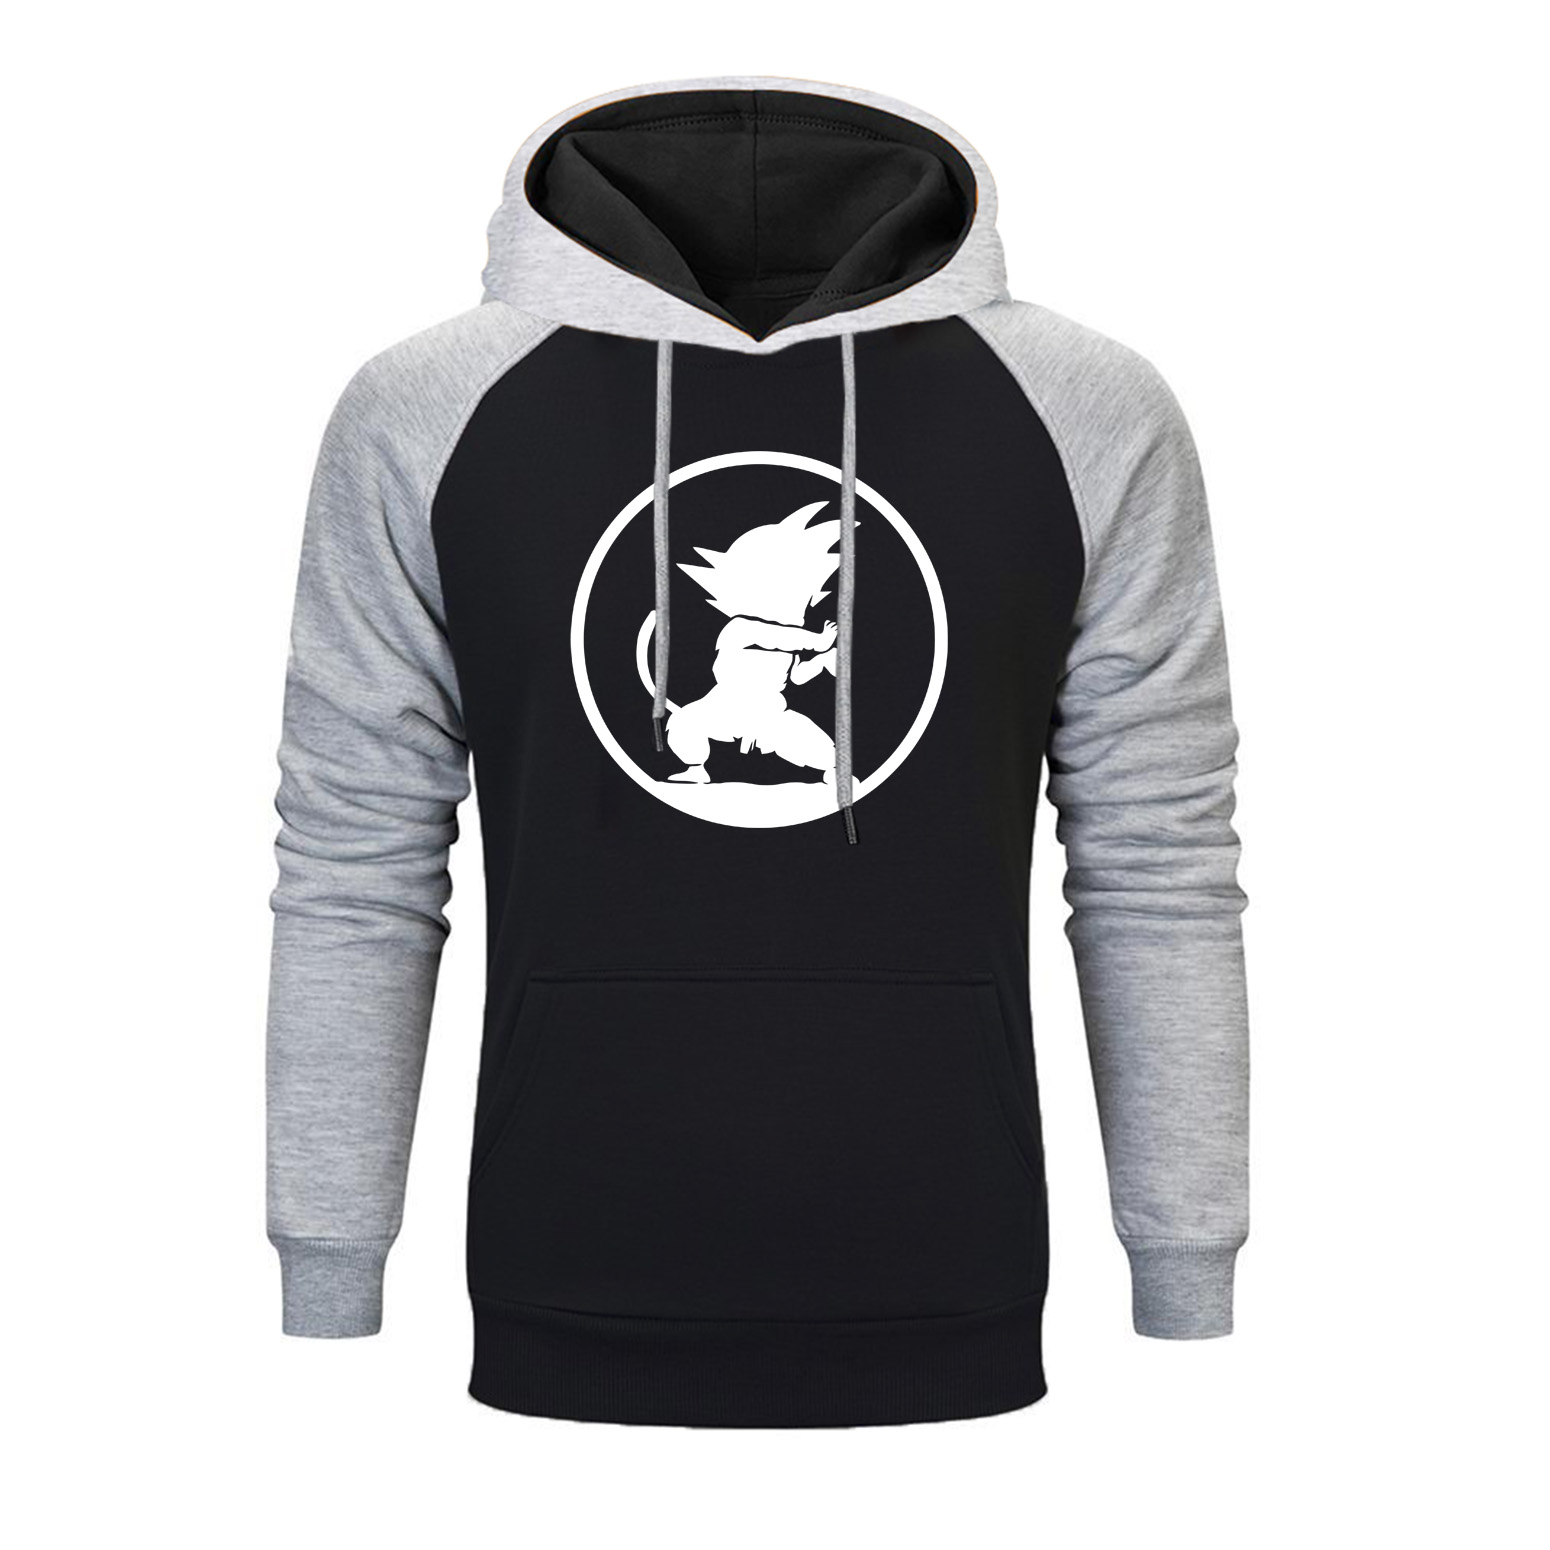 Japanese Anime Dragon Ball Raglan Hoodie Men Fashion Streetwear Print Hoodie Casual Winter Hip Hop Hoodie Sweatshirt Sportswear